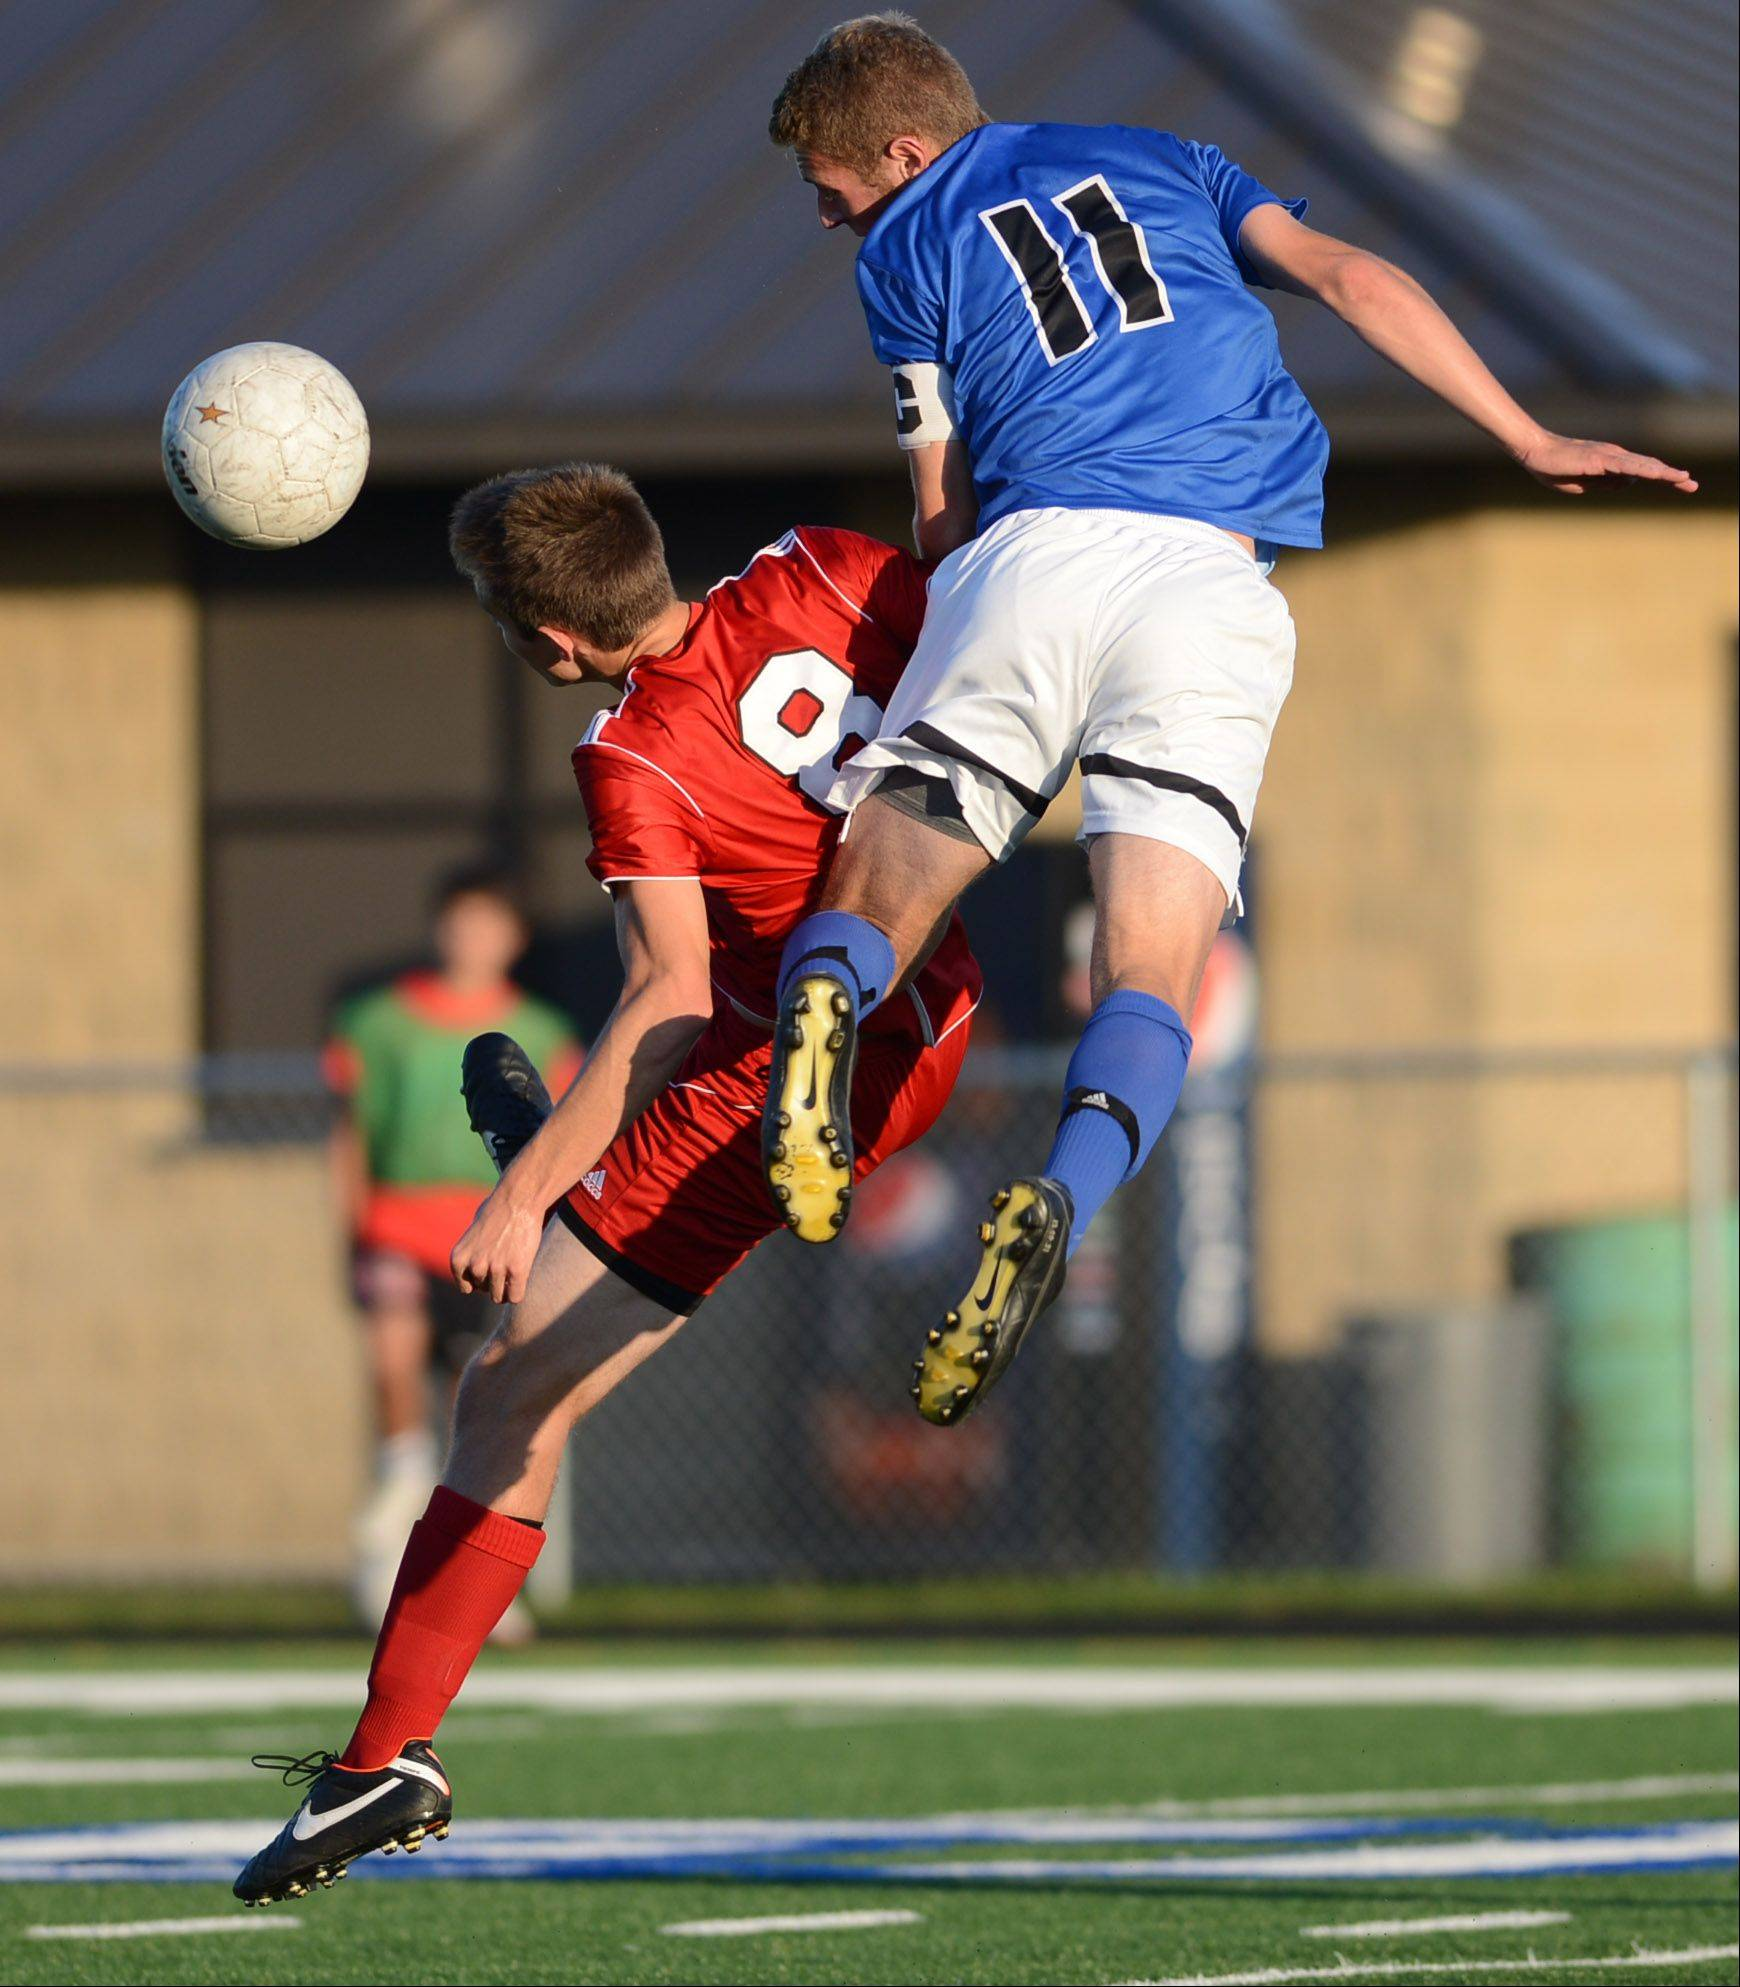 St. Charles North's Phillip Legare wins a header over Batavia's Brendan Allen during Tuesday's action at the Tri-Cities boys soccer challenge in Geneva.